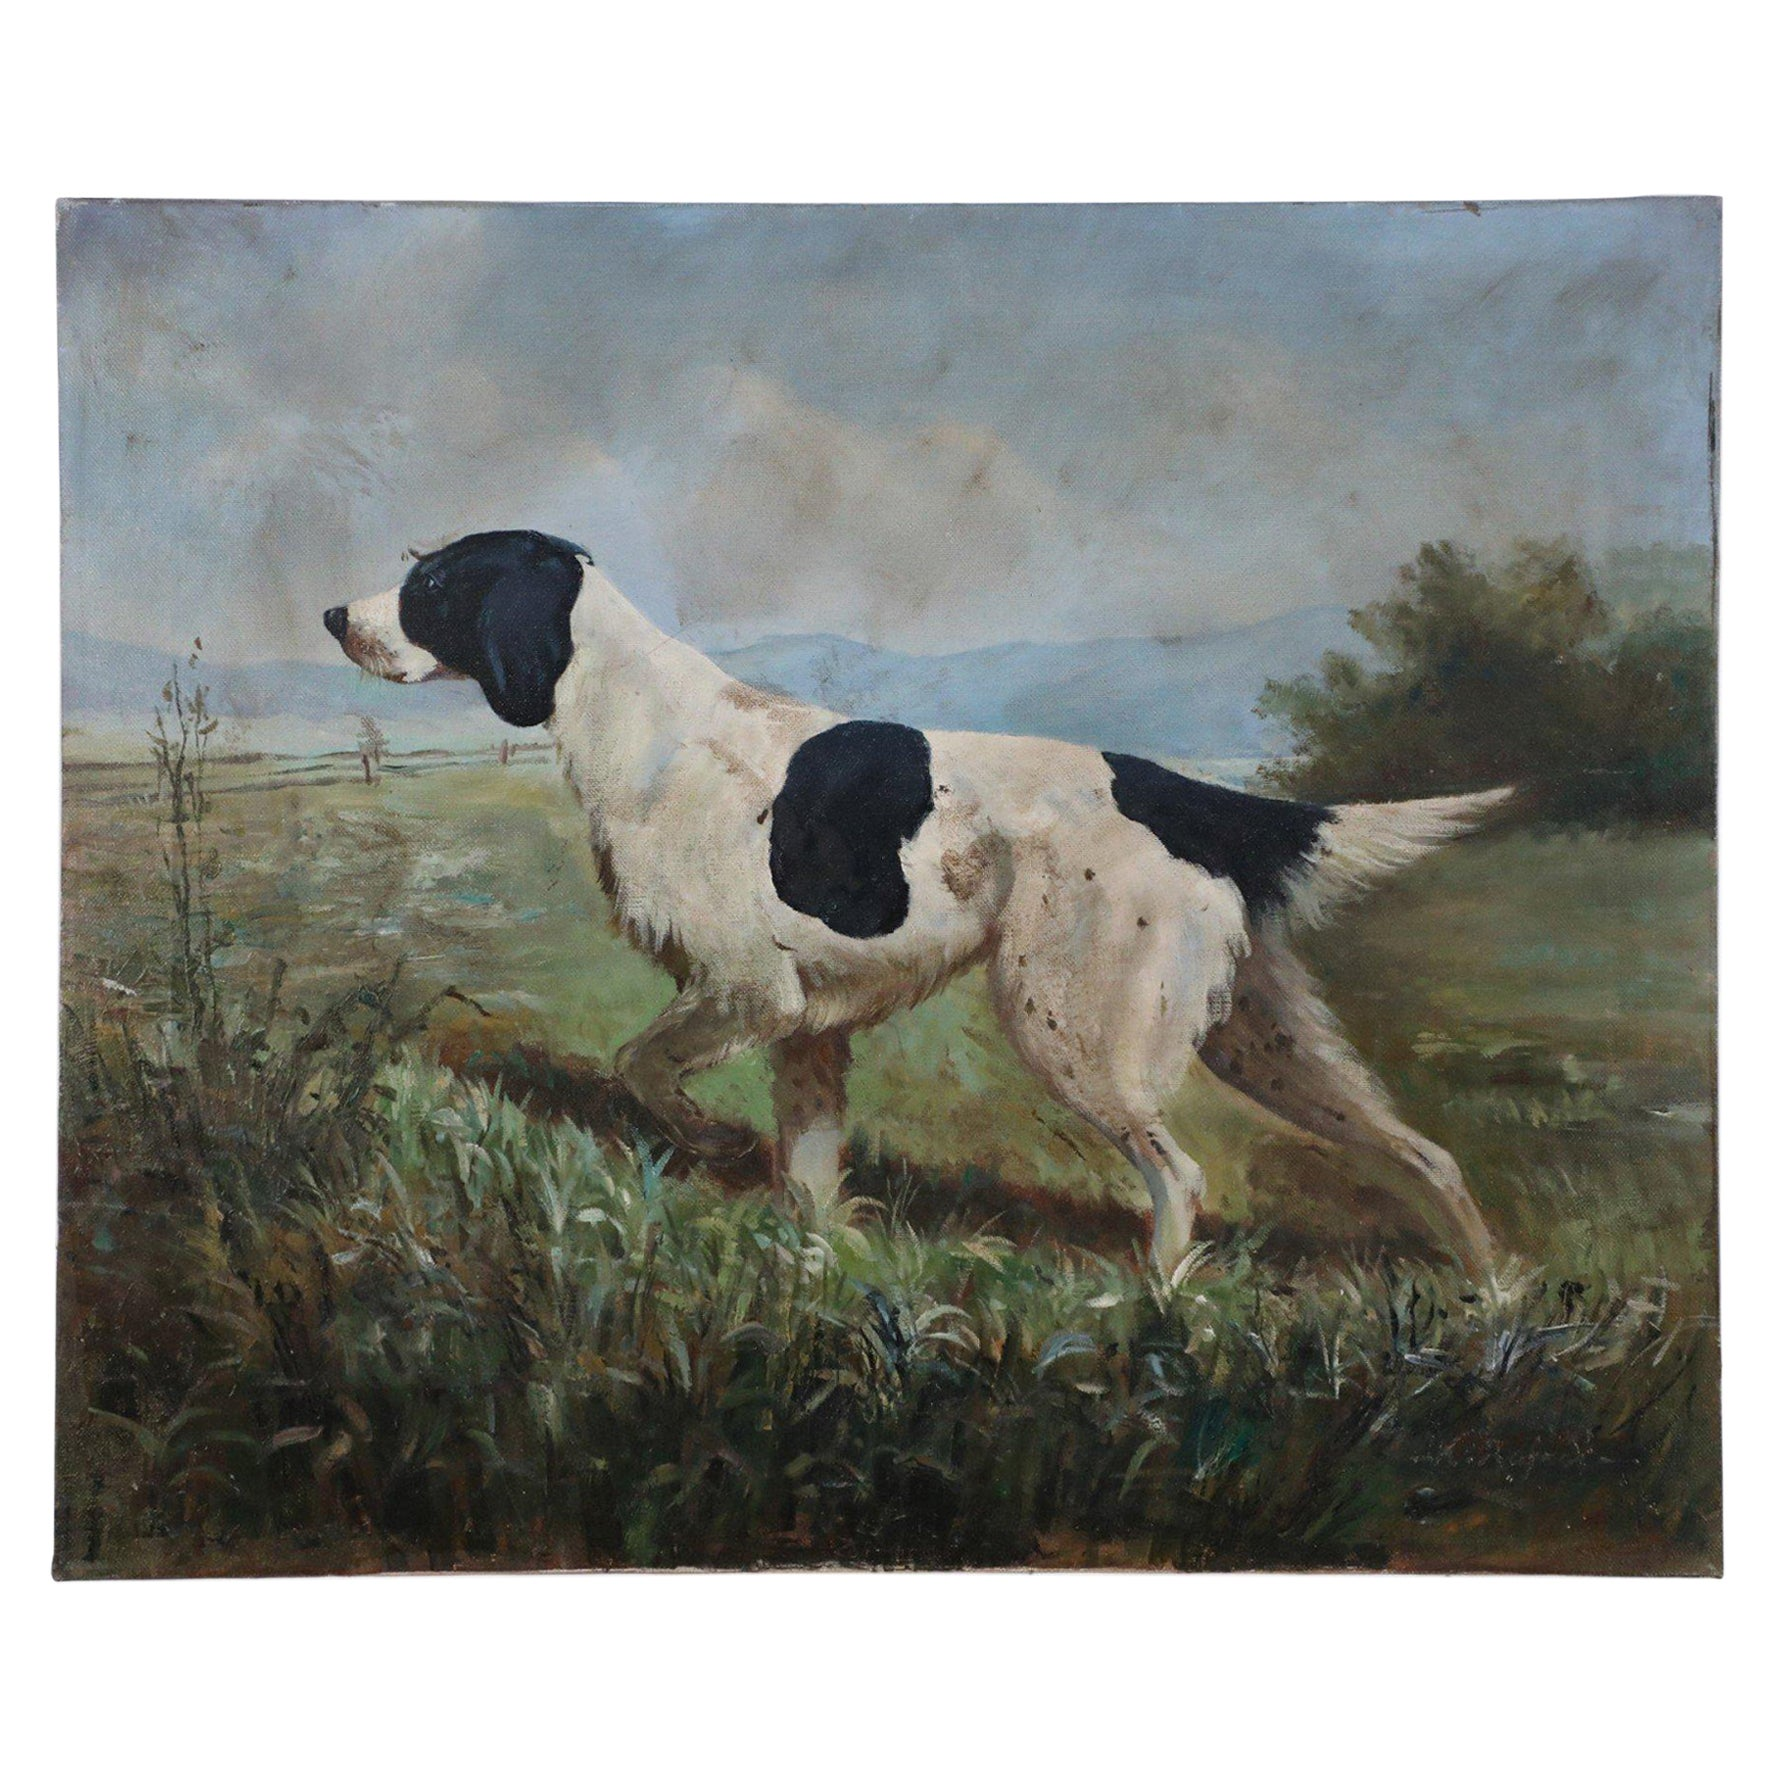 Vintage Black and White Hunting Dog Oil Painting on Canvas